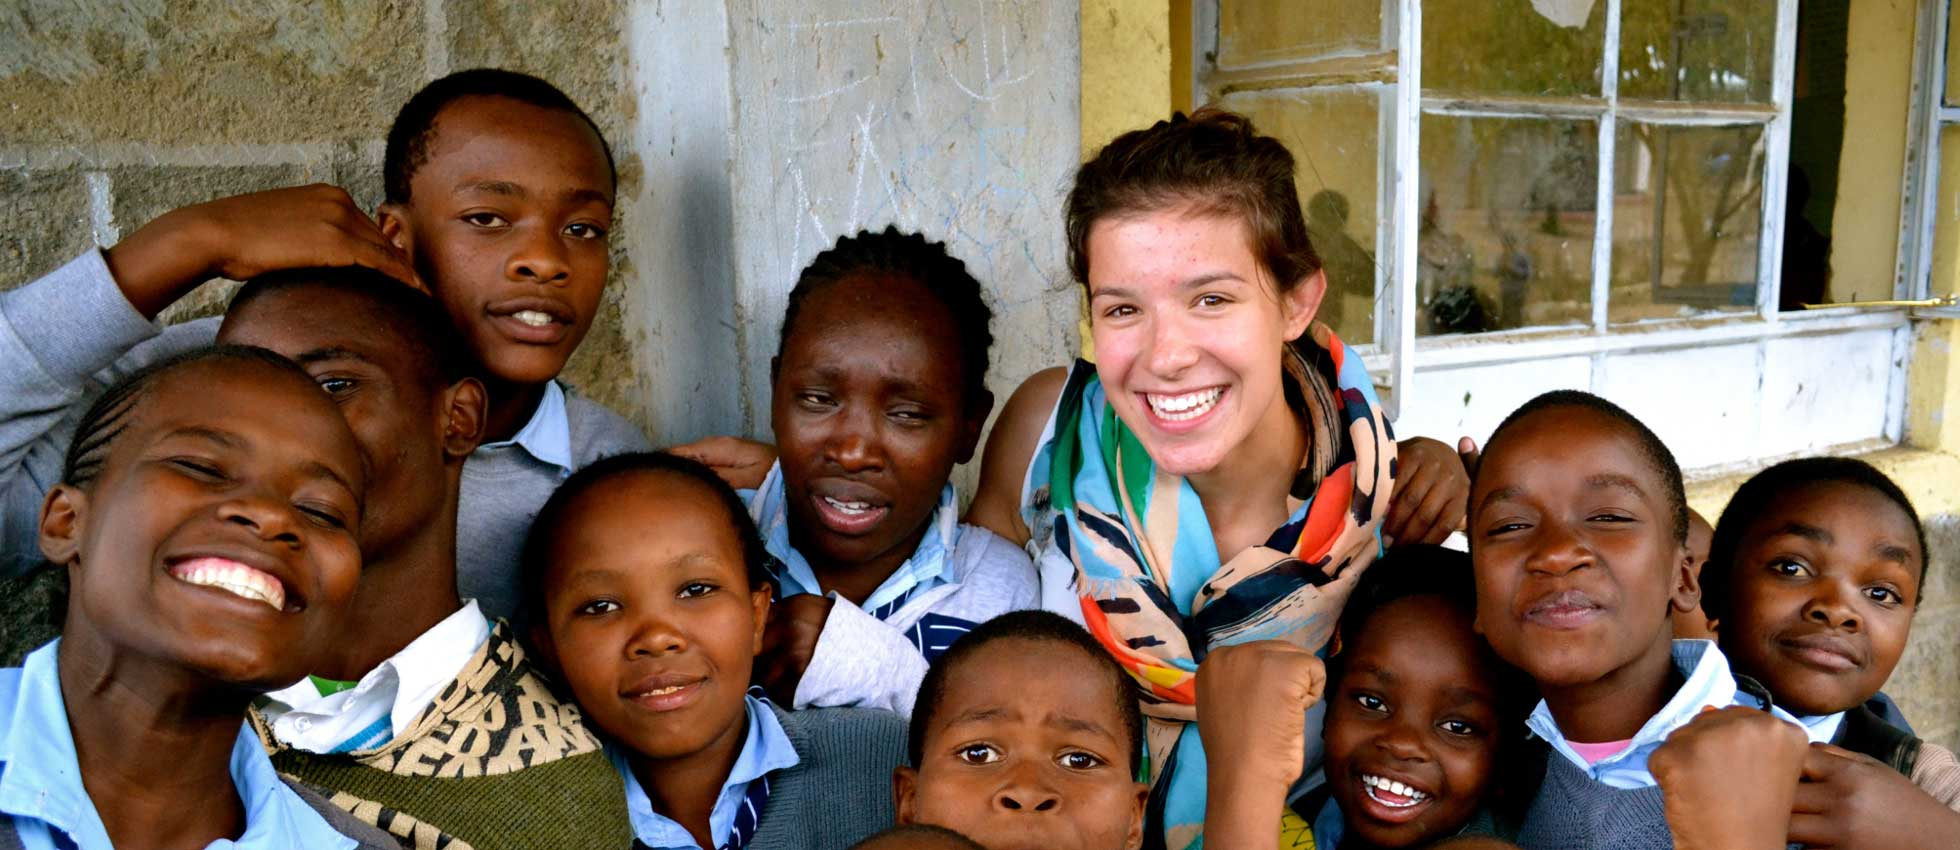 ARCC Gap Year - Students in Africa